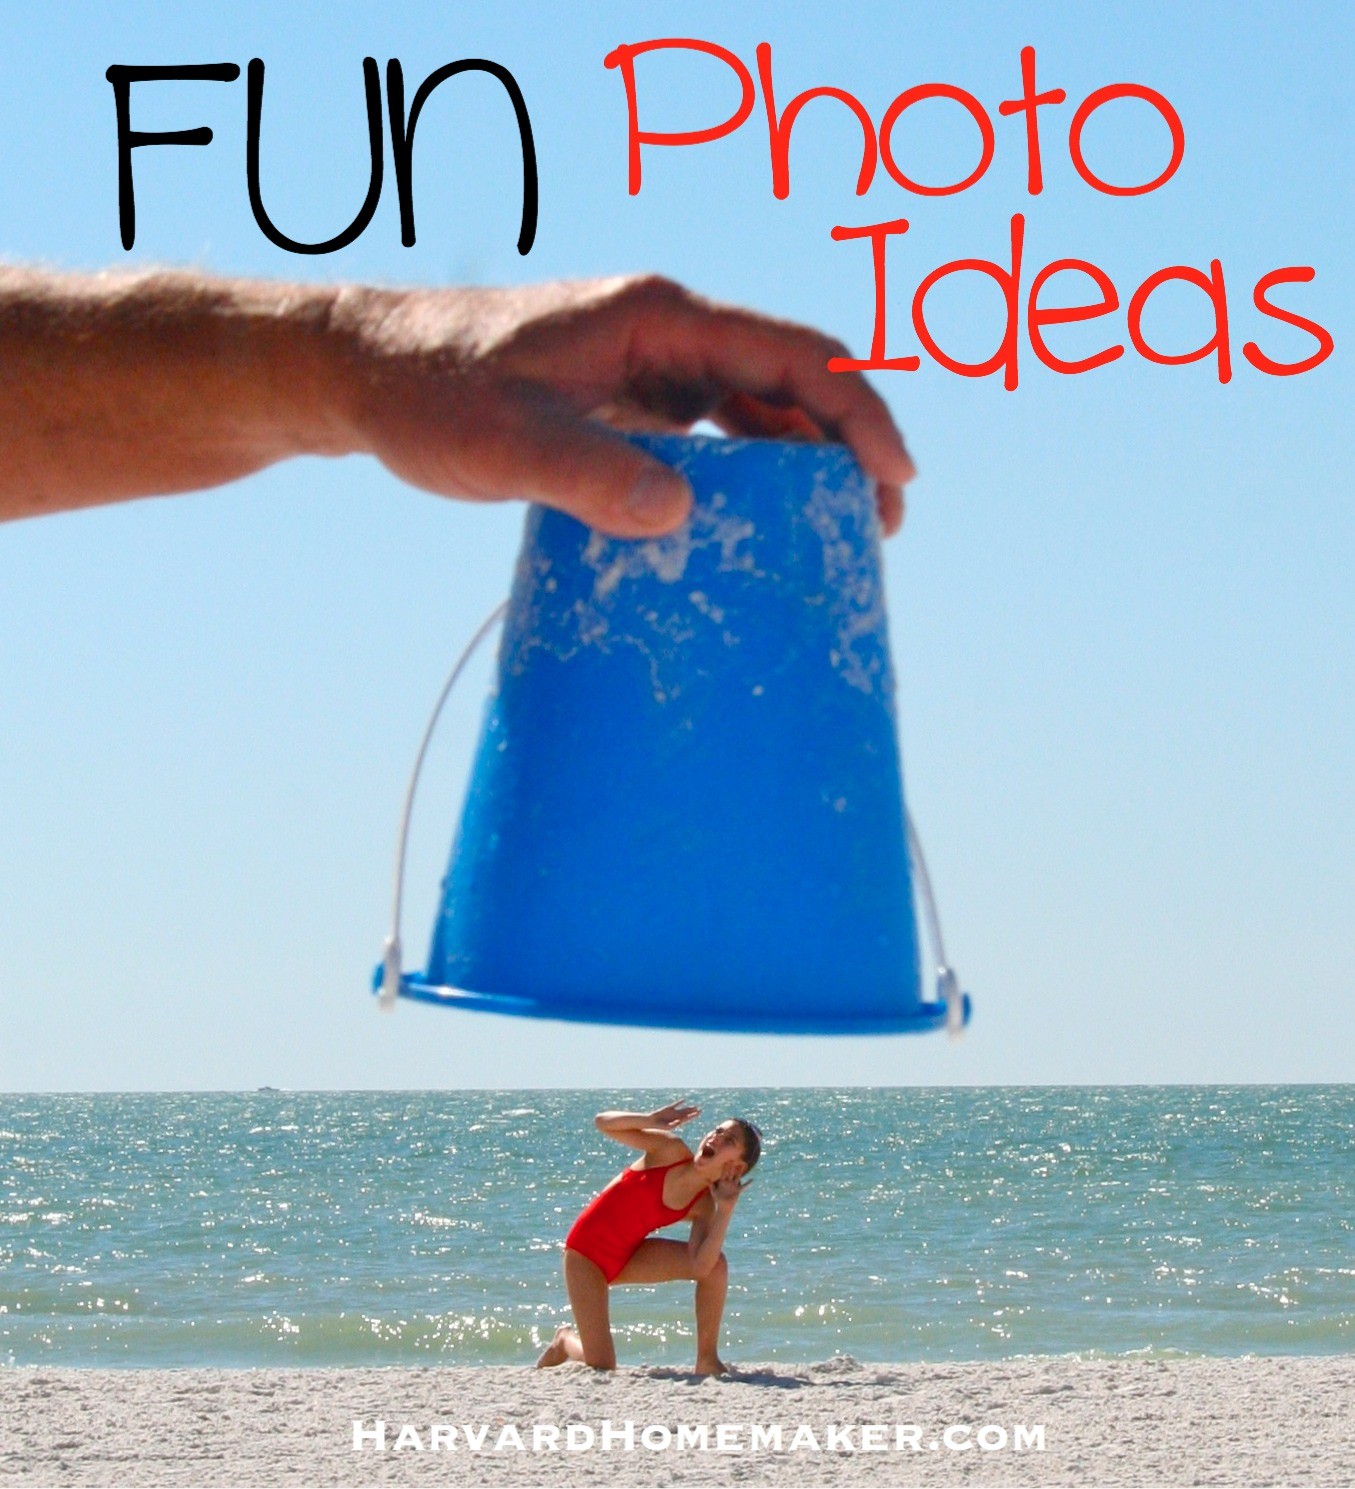 Beach Pics Ideas Fun Photo Ideas Harvard Homemaker